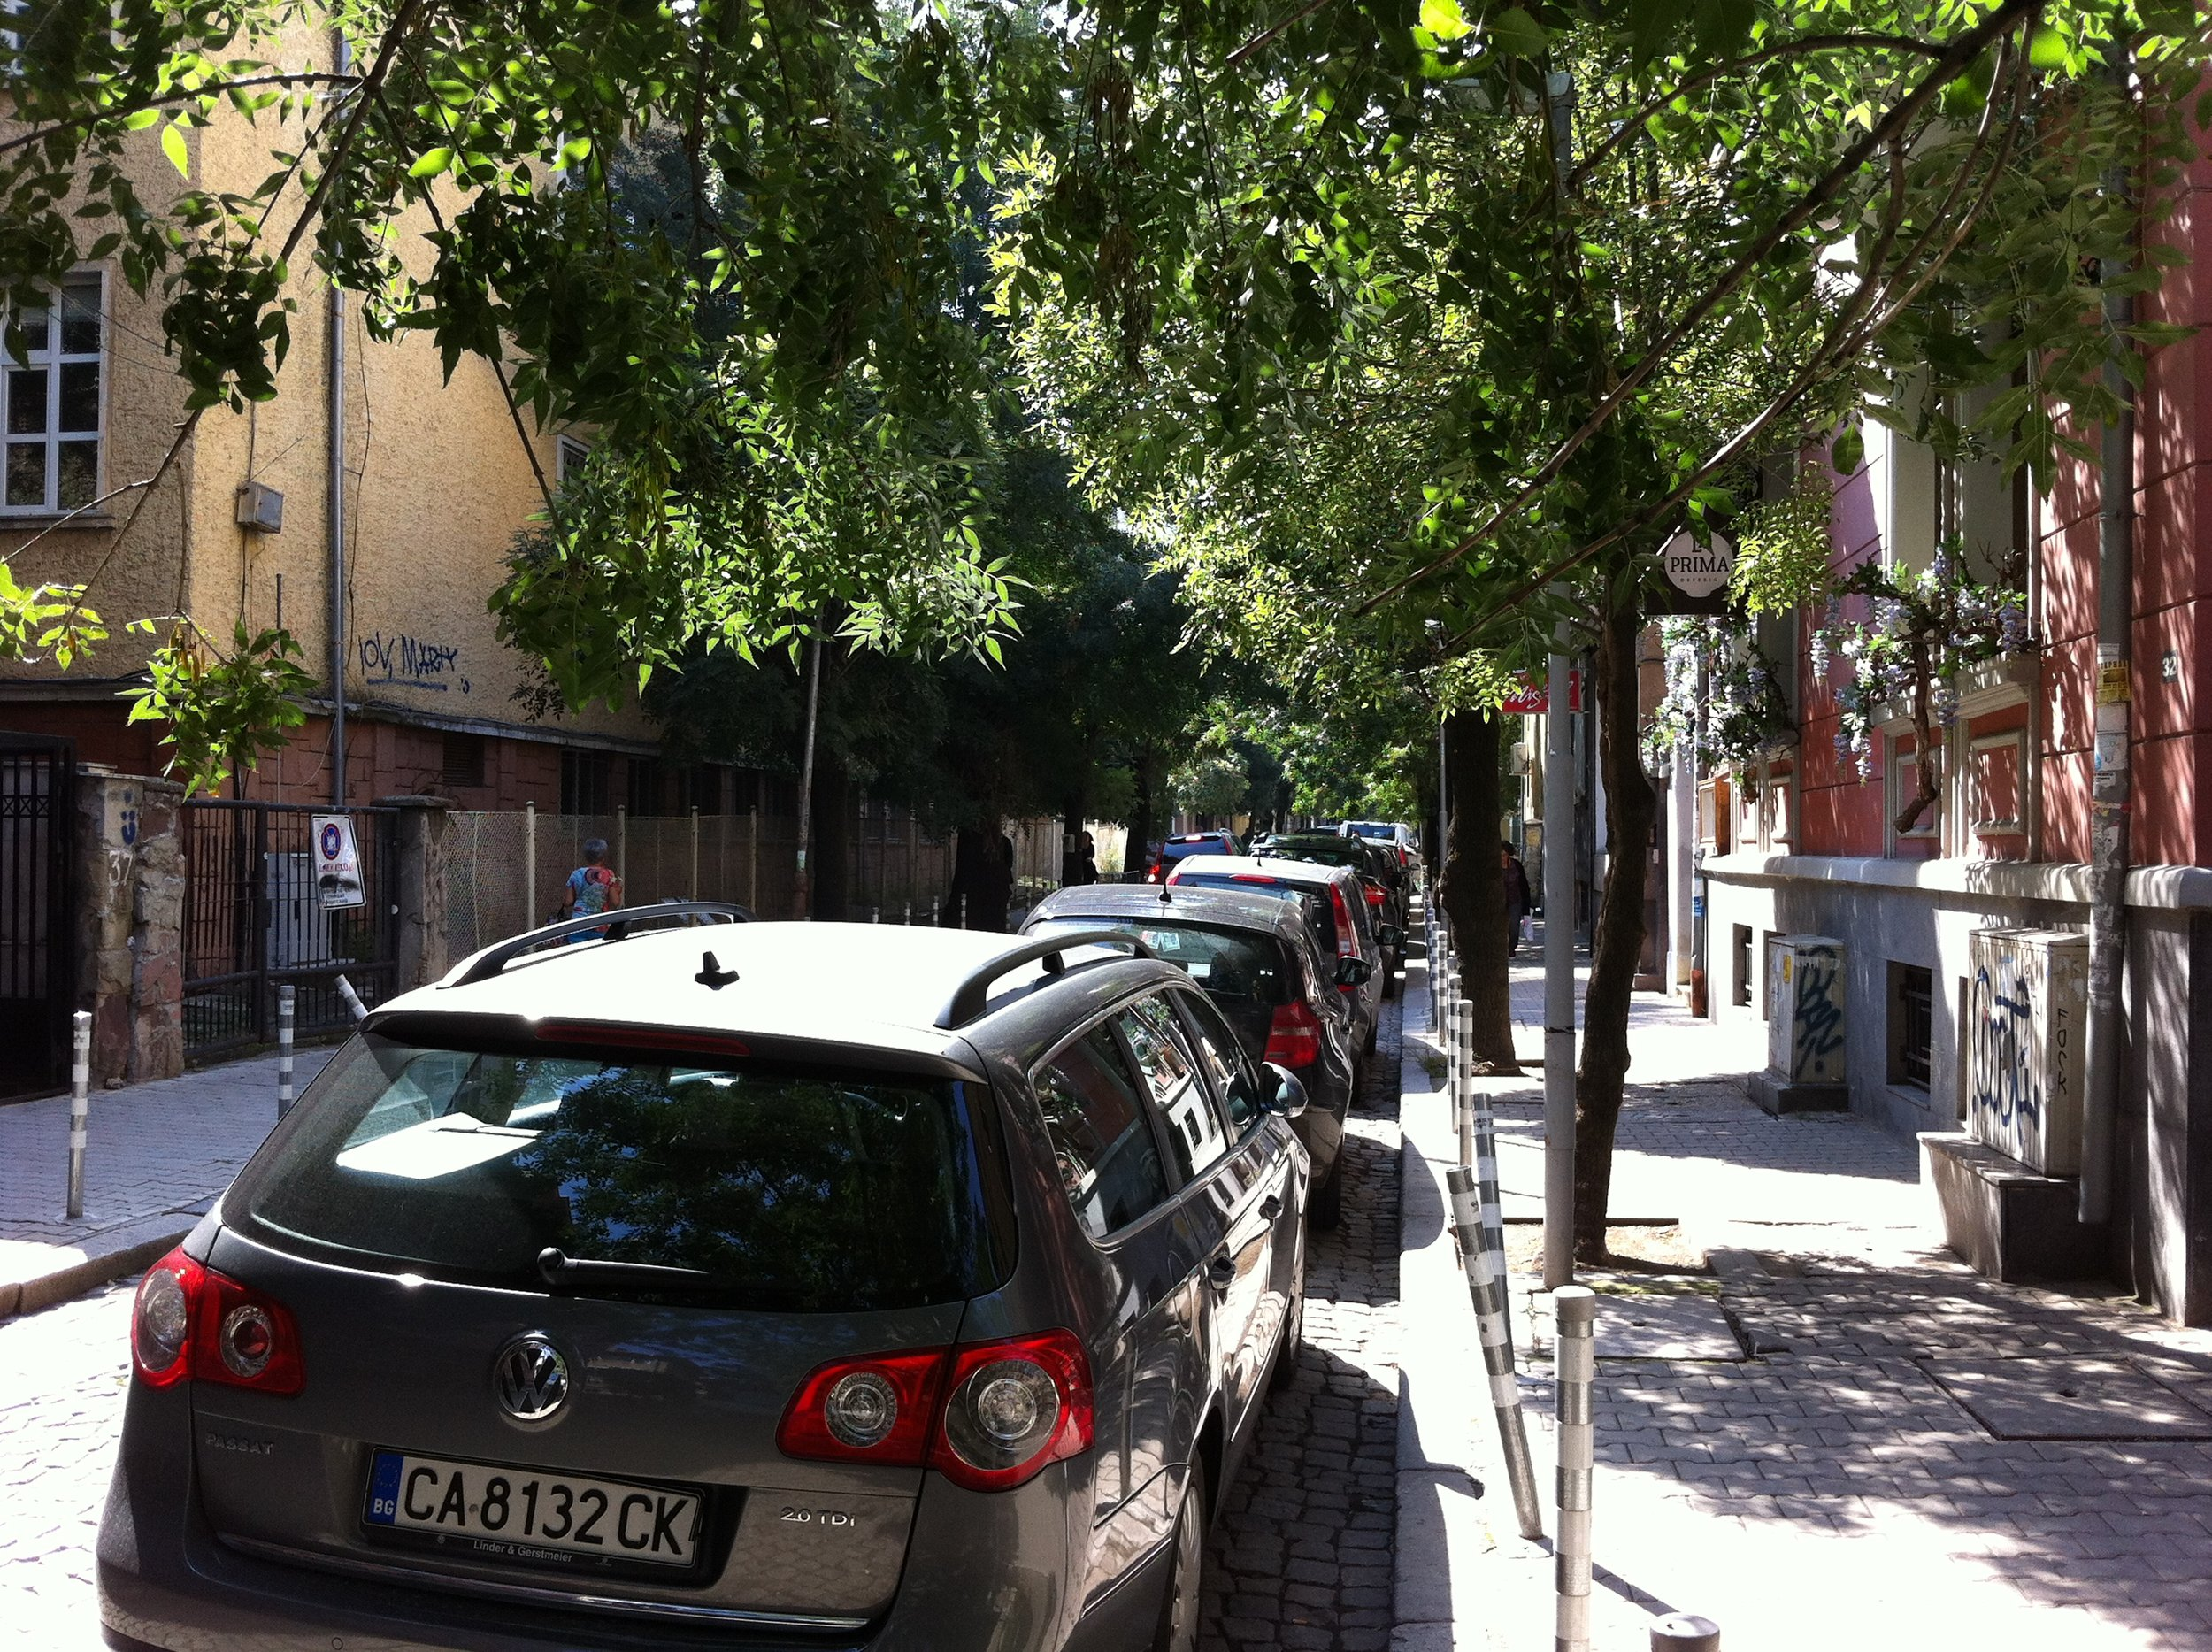 Typical narrow side street in downtown Sofia